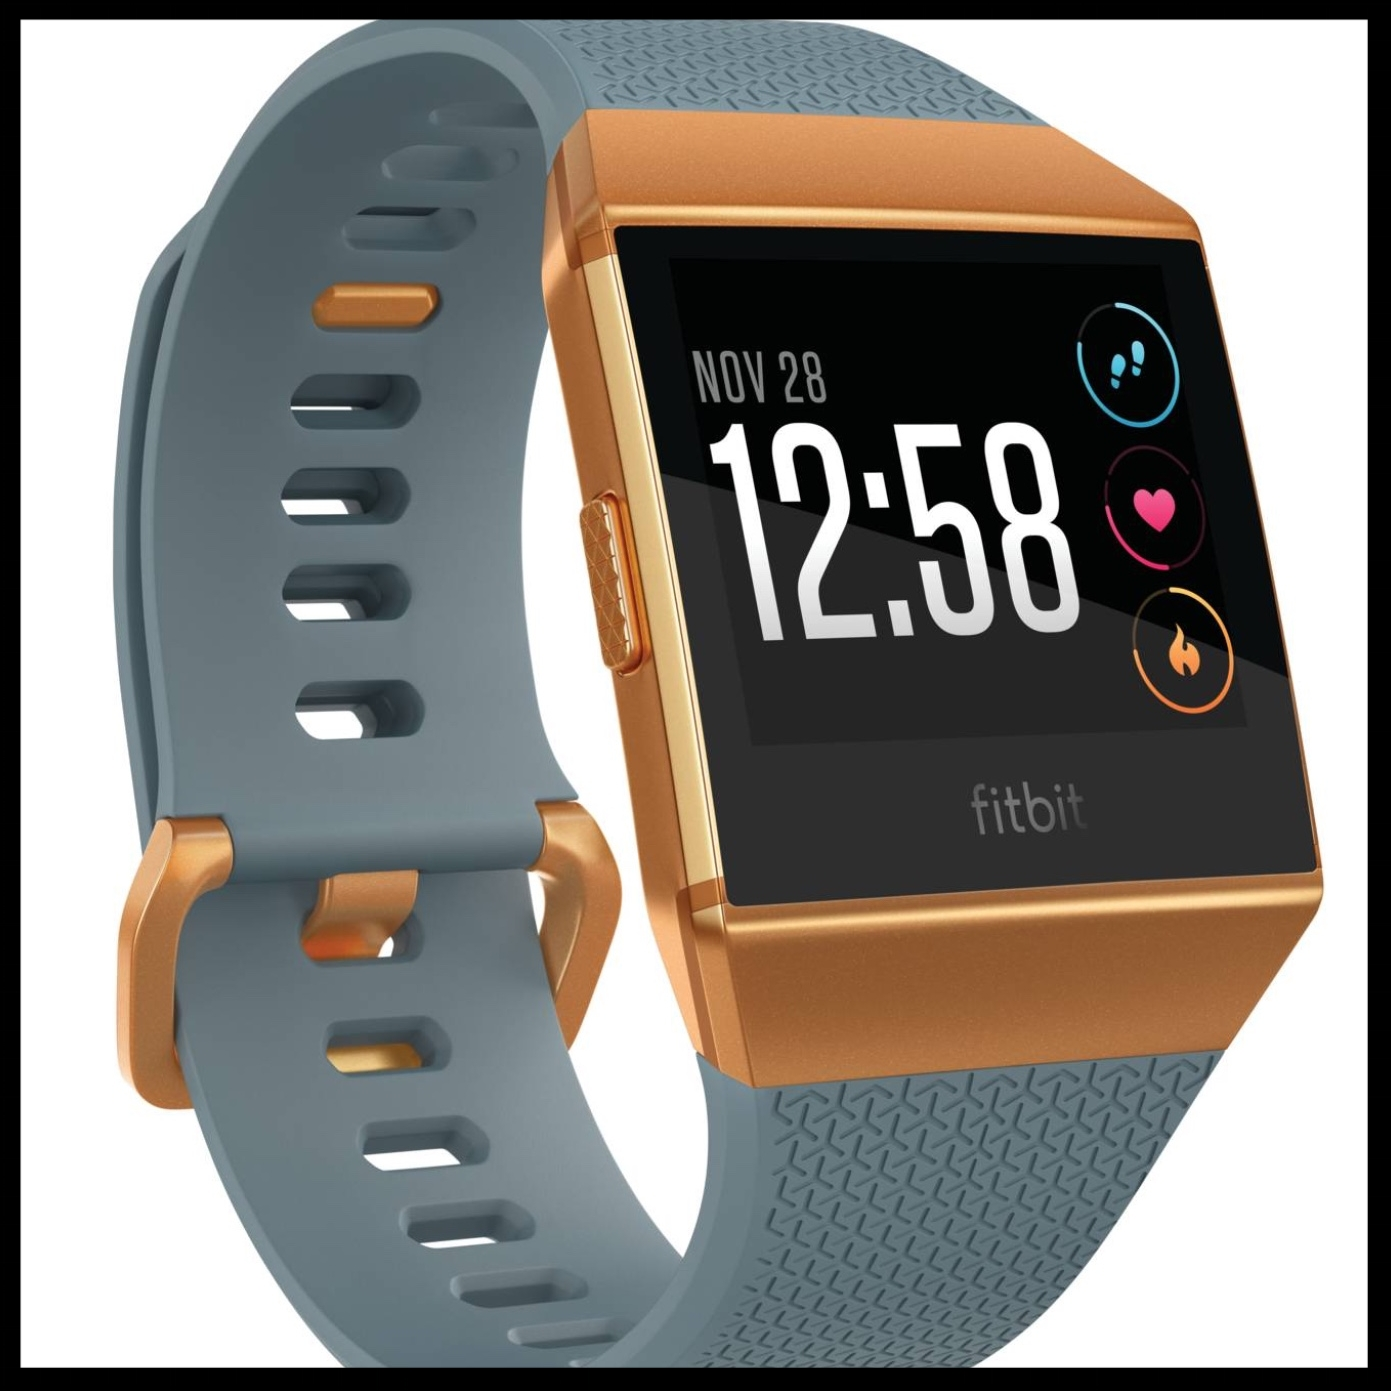 Fitbit Ionic Smartwatch - $269.95 - With its durable band and spectacular HD display face, this Fitbit Smartwatch will make an impressive gift!